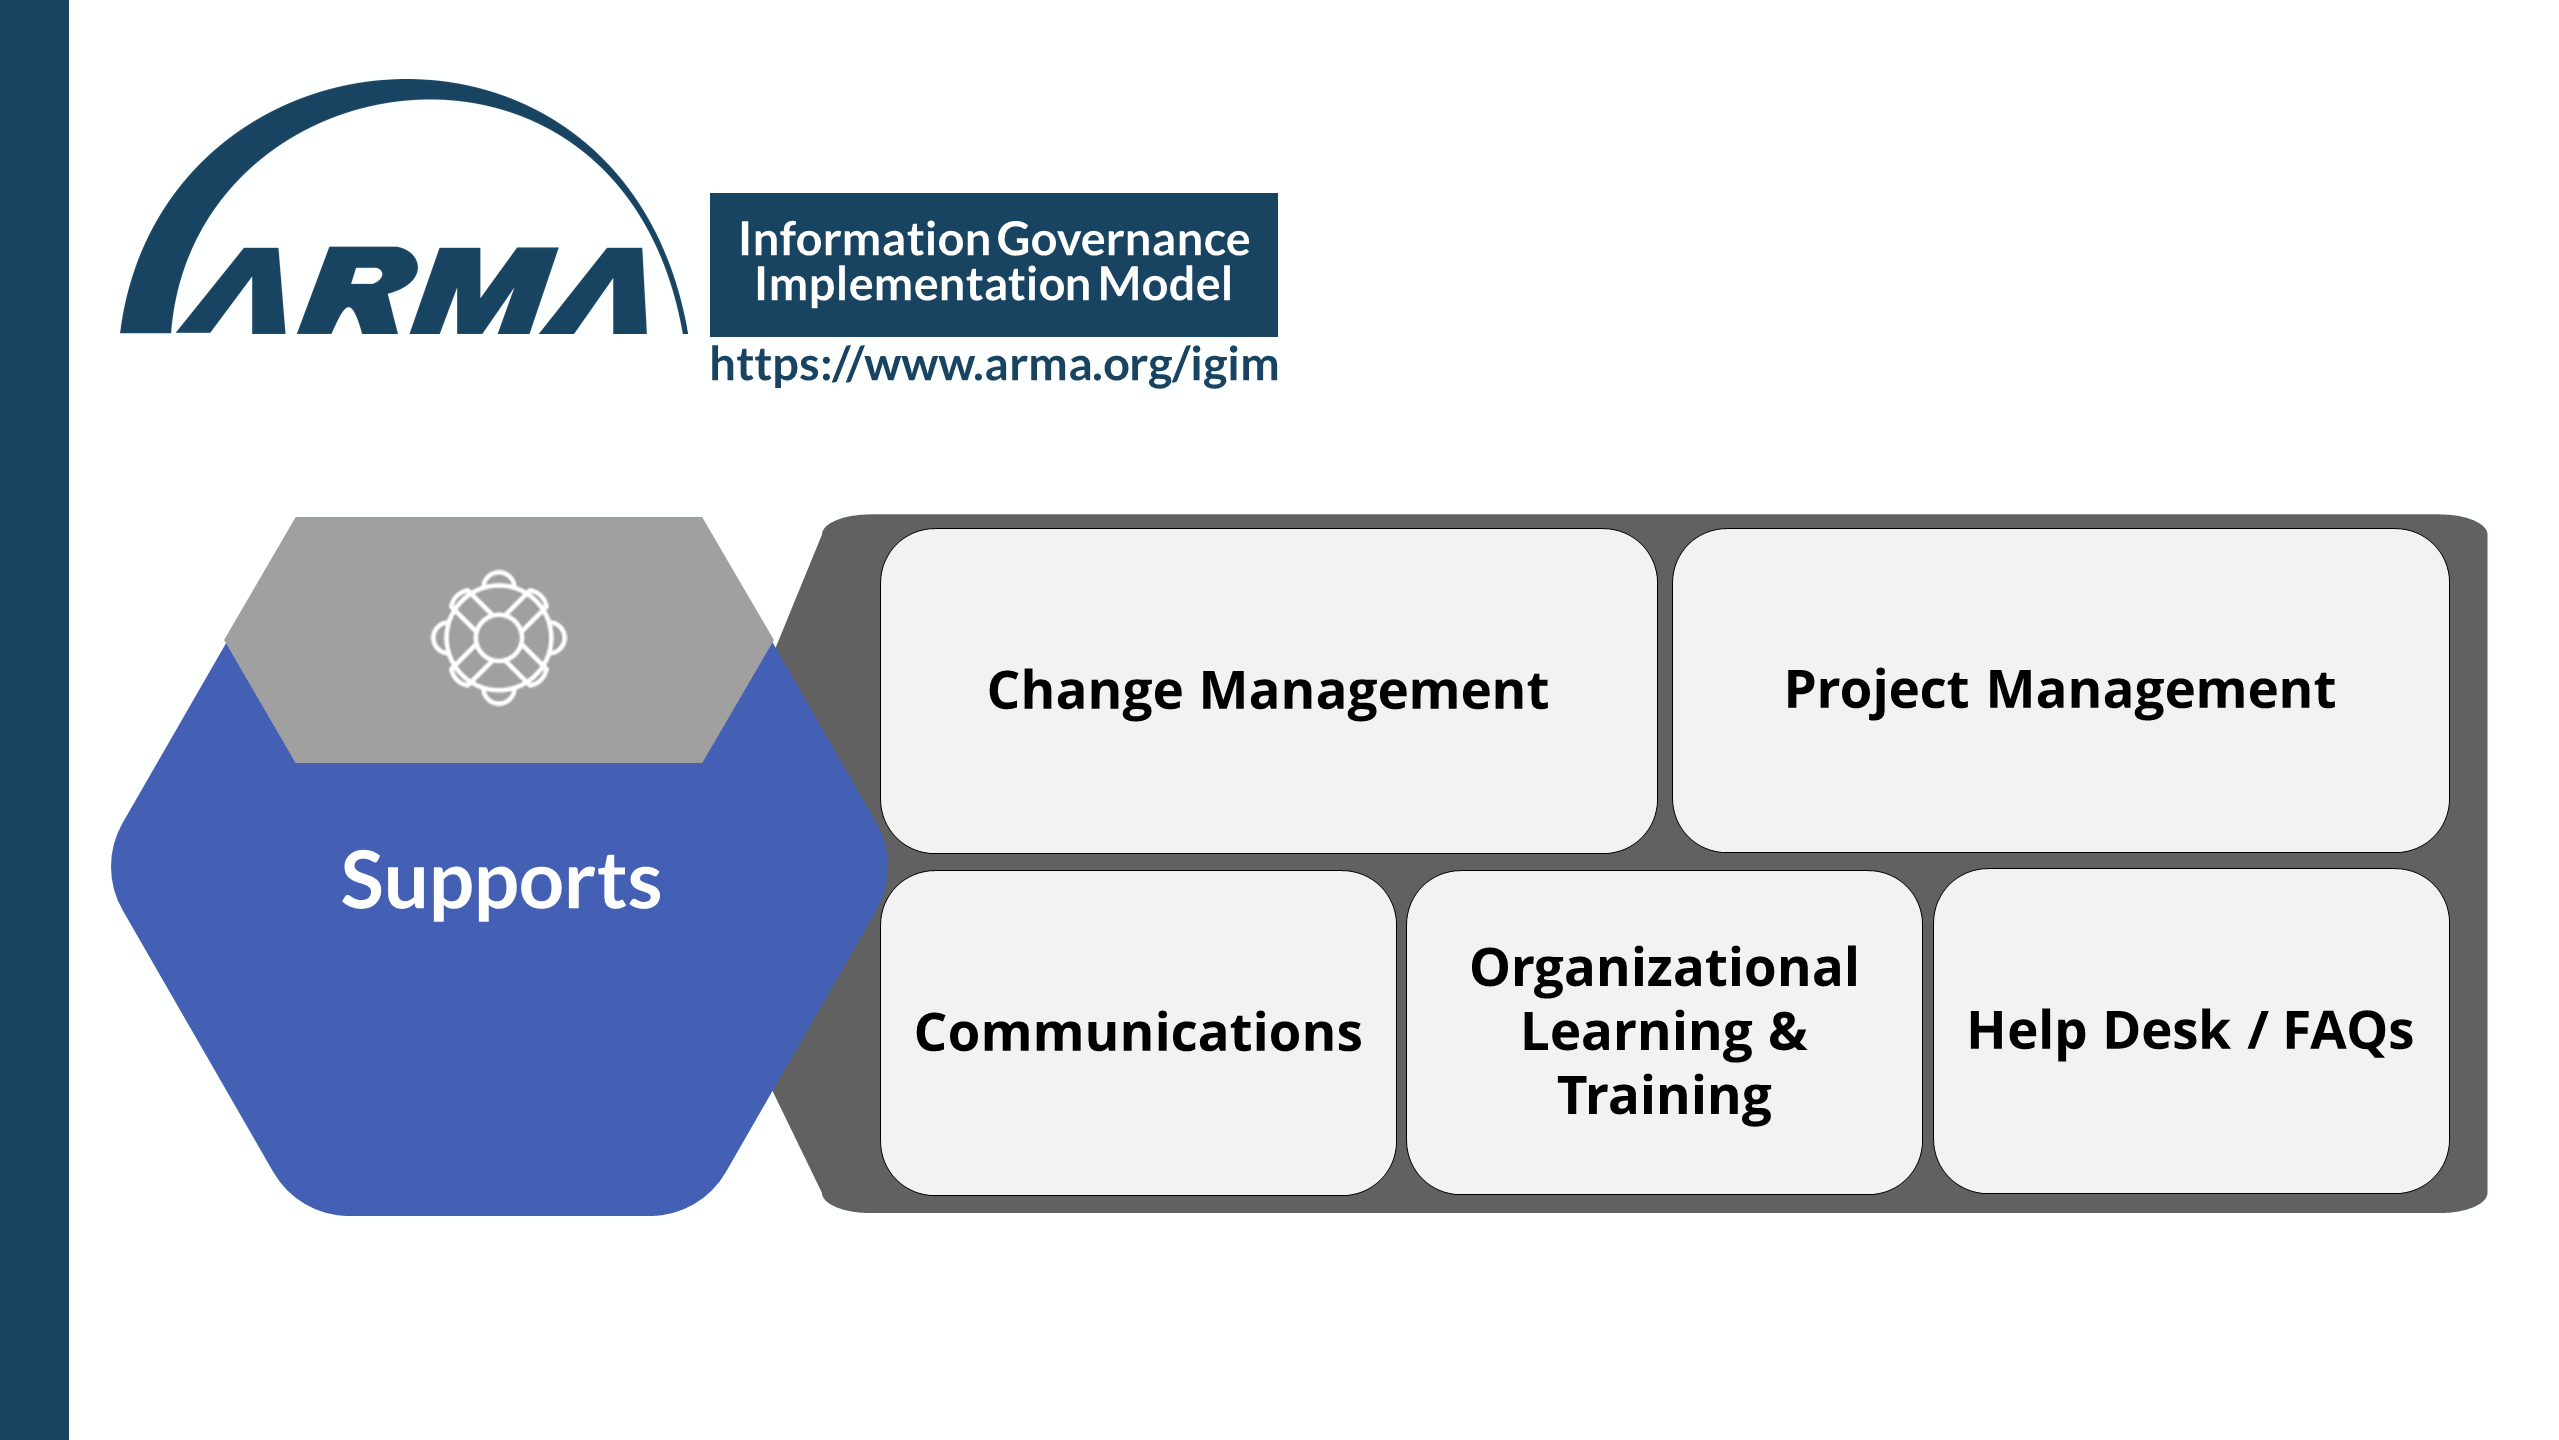 Information Governance Implementation Model - Supports